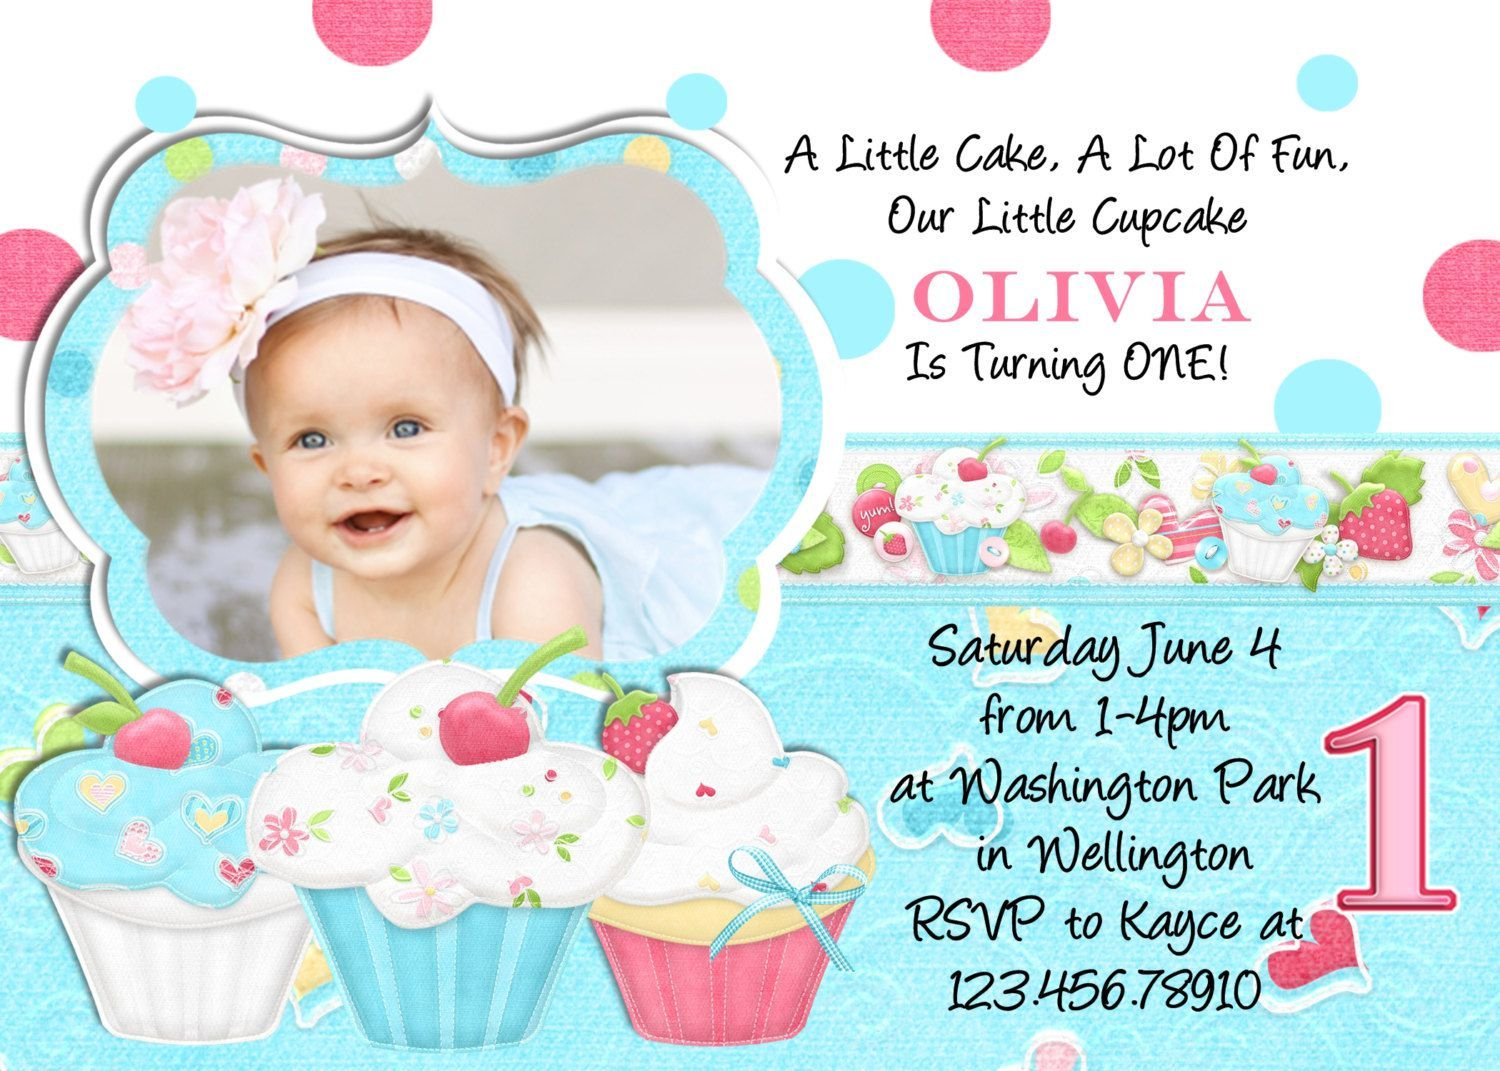 cupcake birthday invitation template ; d19e20c81262545b3295b9beb4ef69b8